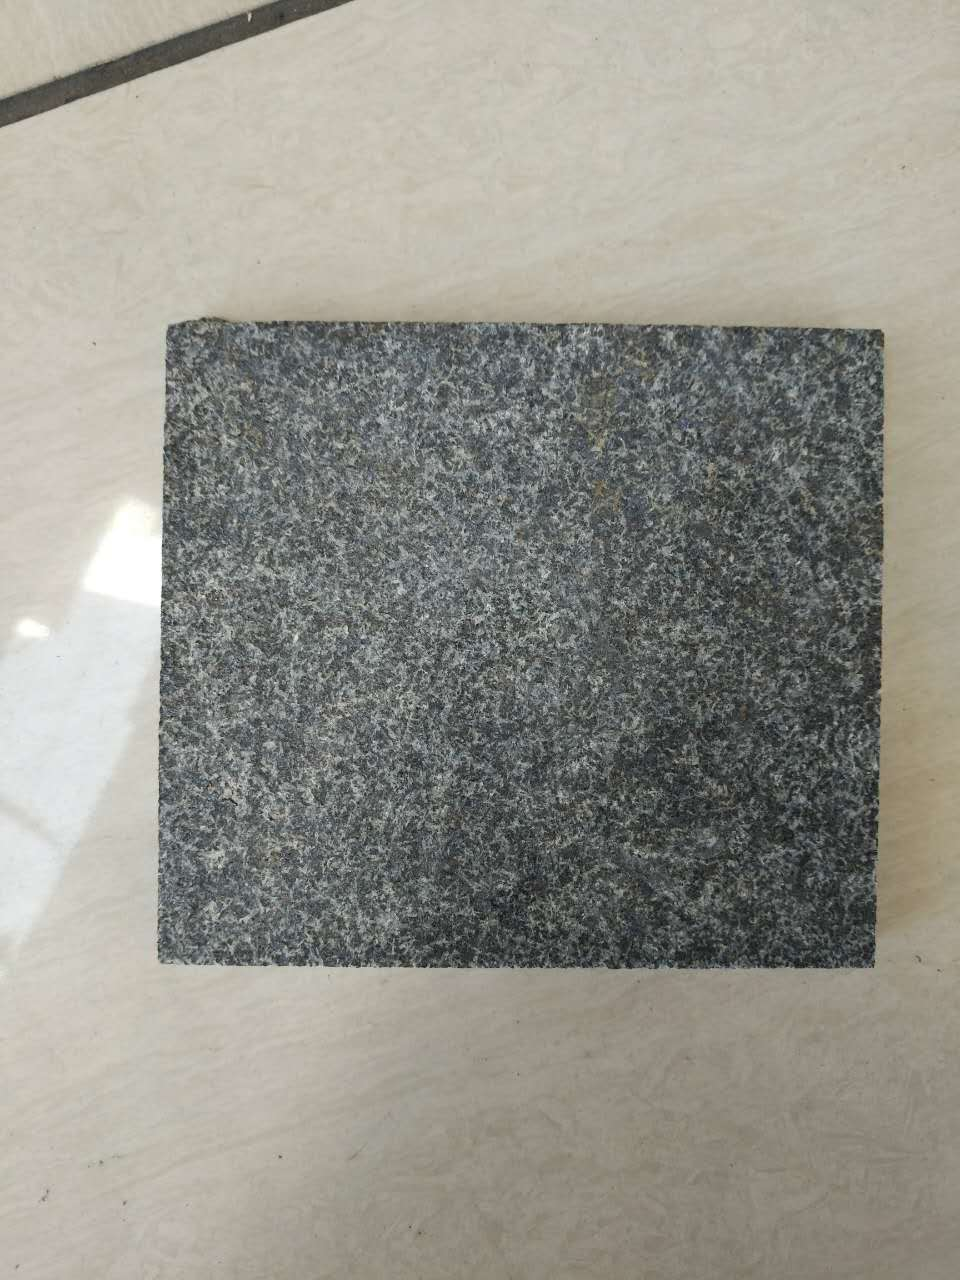 Chinese New Shanxi Black Granite Tiles with flamed surface